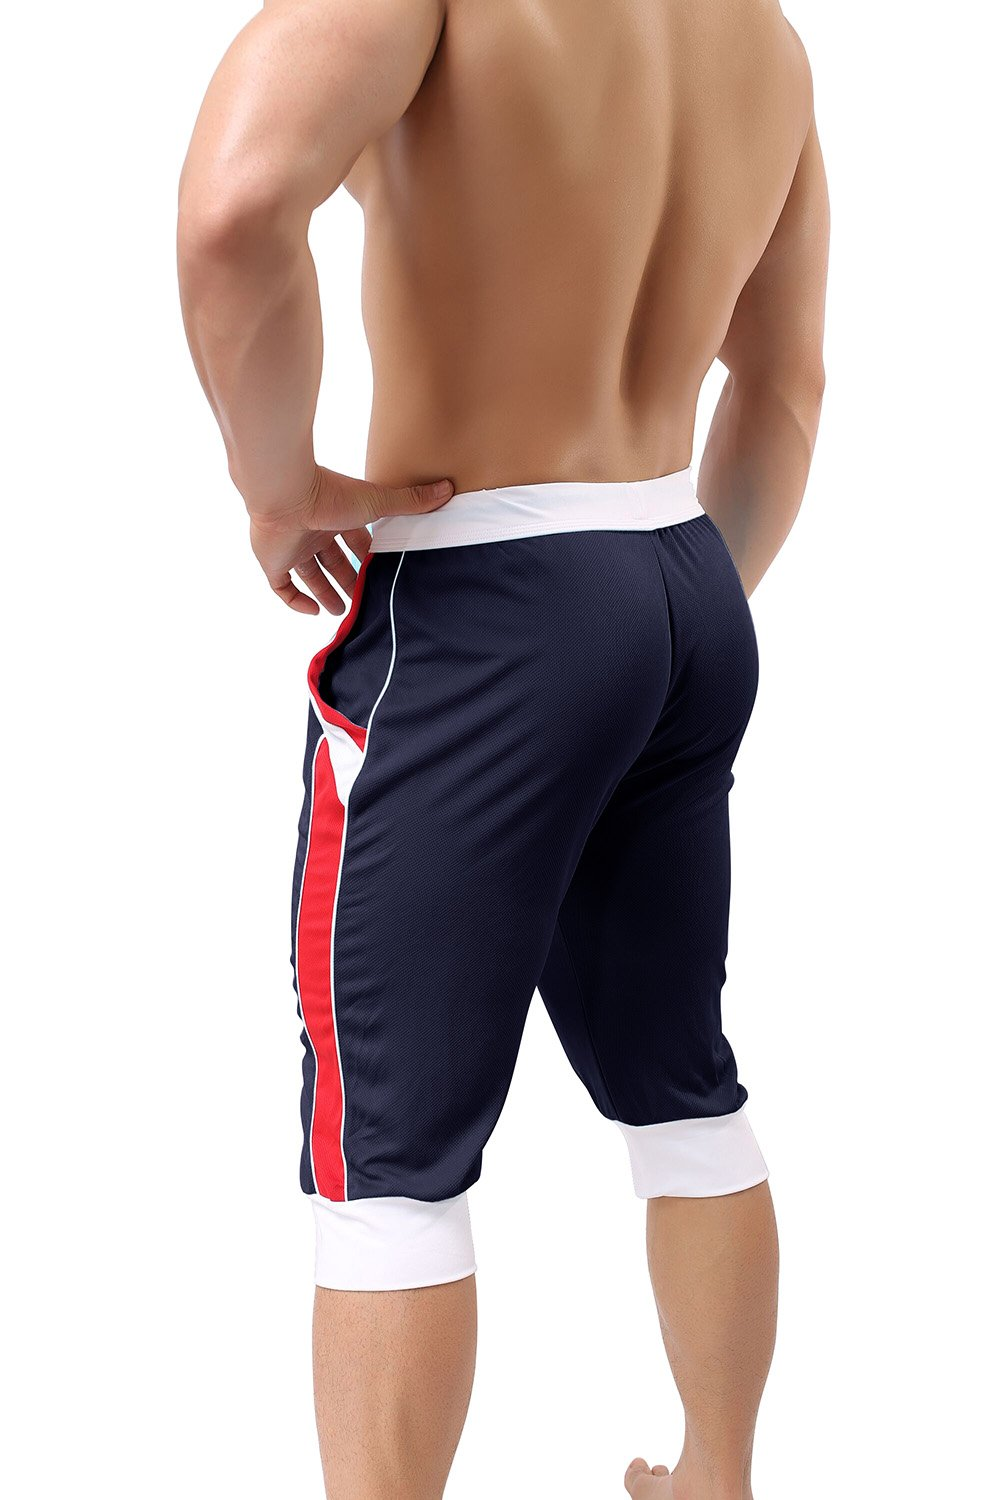 FASKUNOIE Mens Workout Running Shorts Super Breathable Mesh Shorts with Pockets